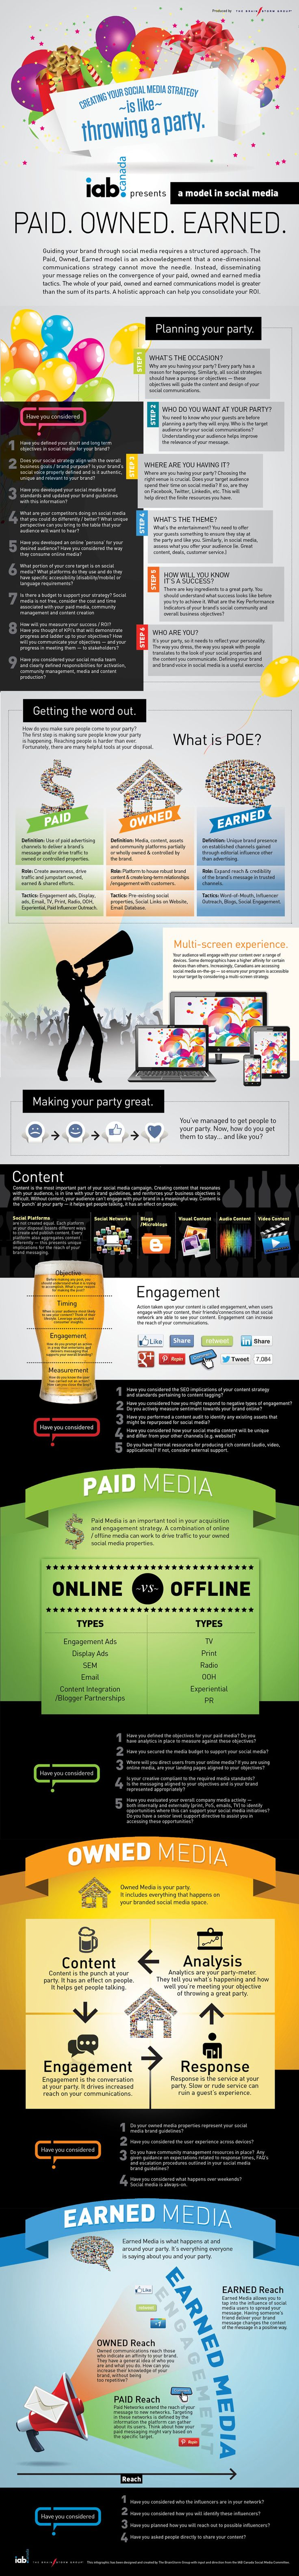 Paid, Owned, Earned: A Strategic Business Model For Effective Social Media Marketing [INFOGRAPHIC]